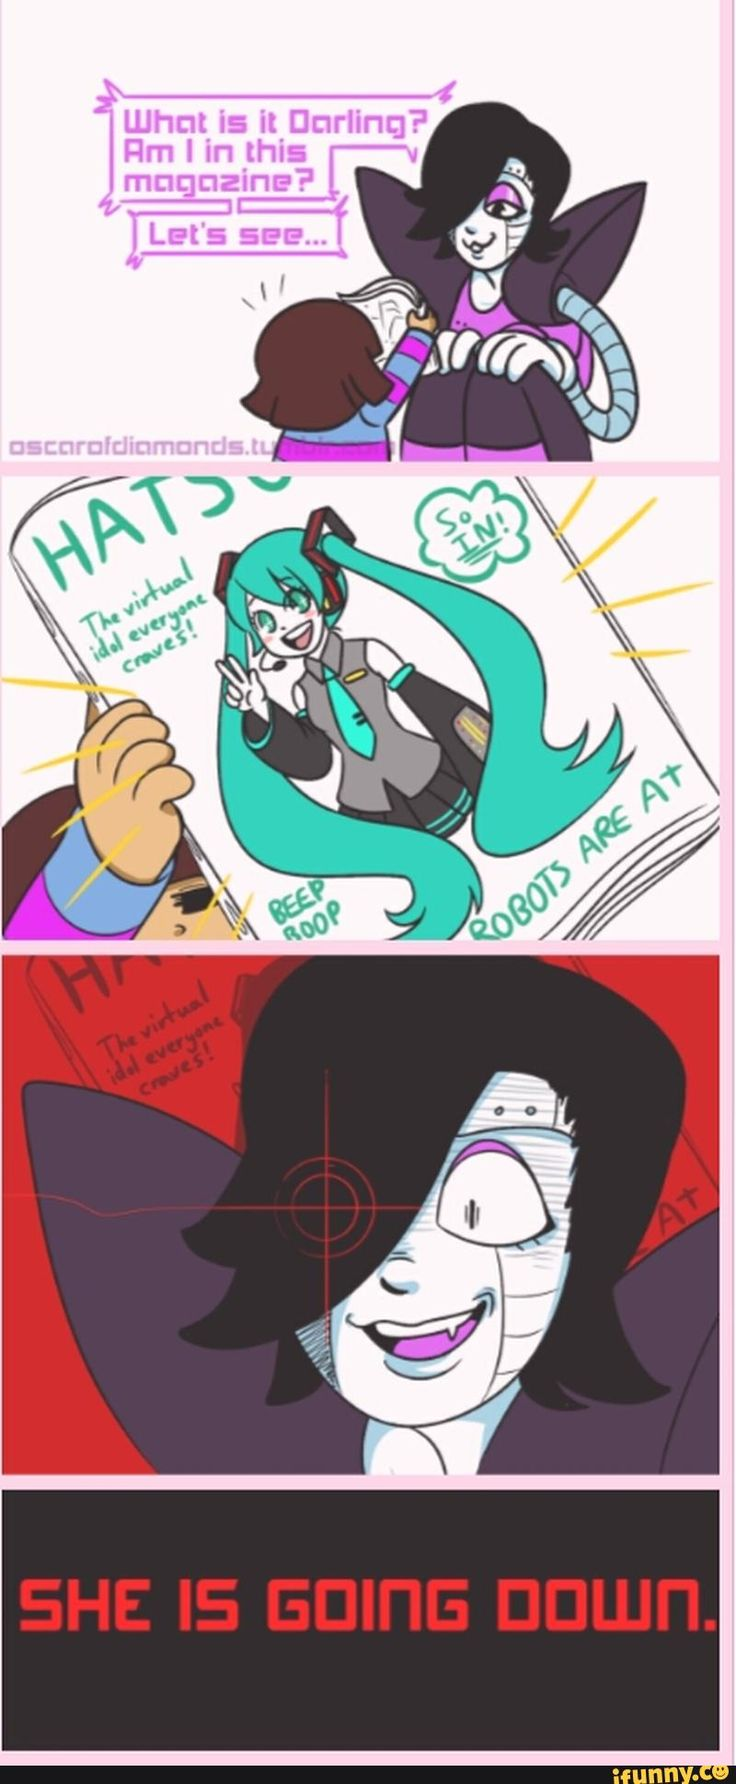 METTATON NOOO!!!!! DON'T HURT MIKU!!!!!! DX SHE EVERYBODY FAVORITE NON REAL SINGER!!!!